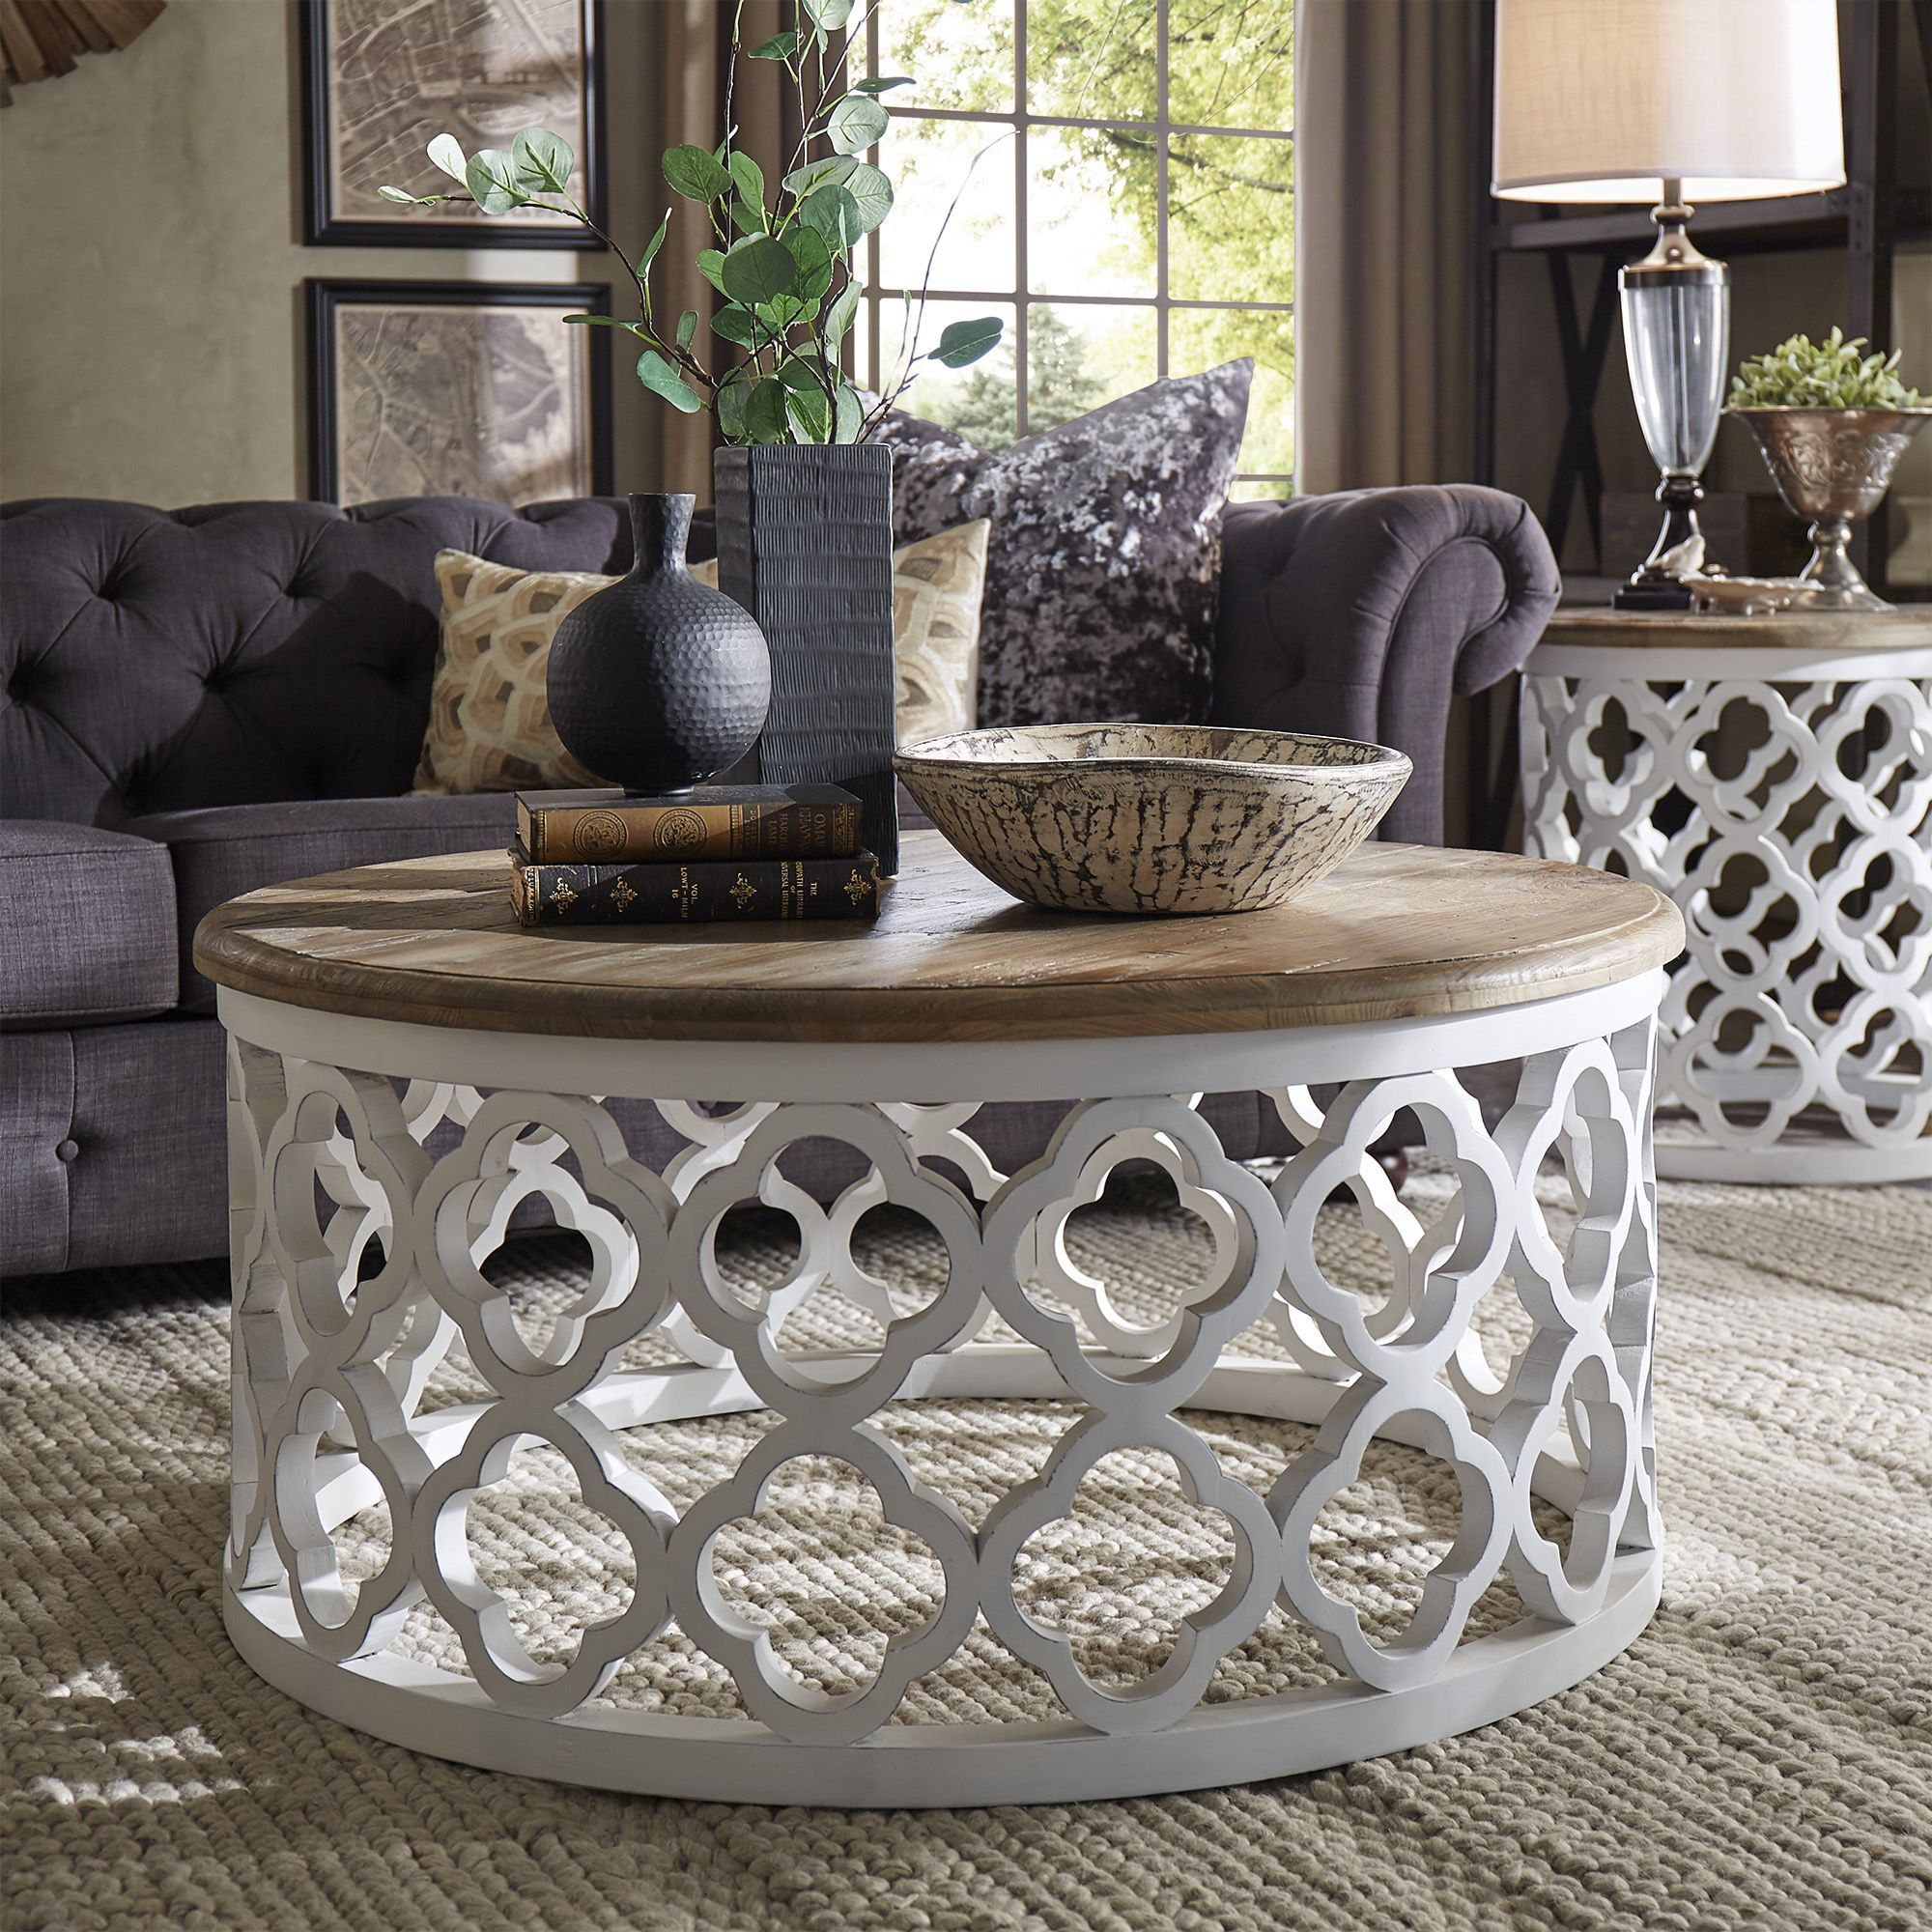 Signal Hills Vince Reclaimed Wood Moroccan Trellis Drum Coffee